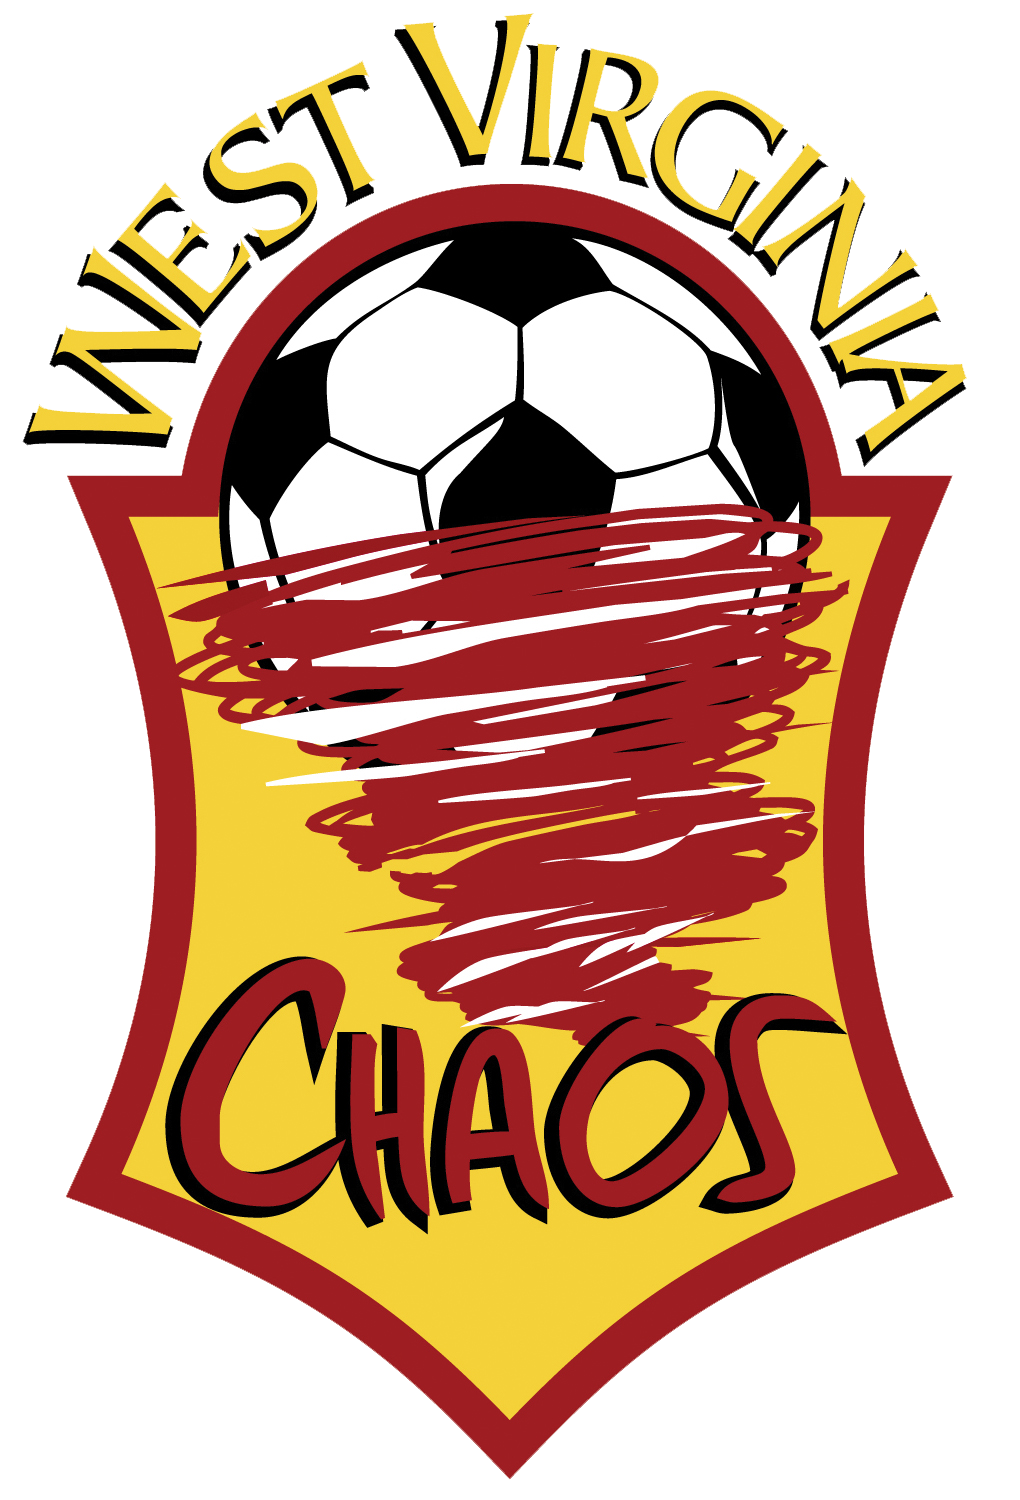 West Virginia Chaos   uslleaguetwo.com